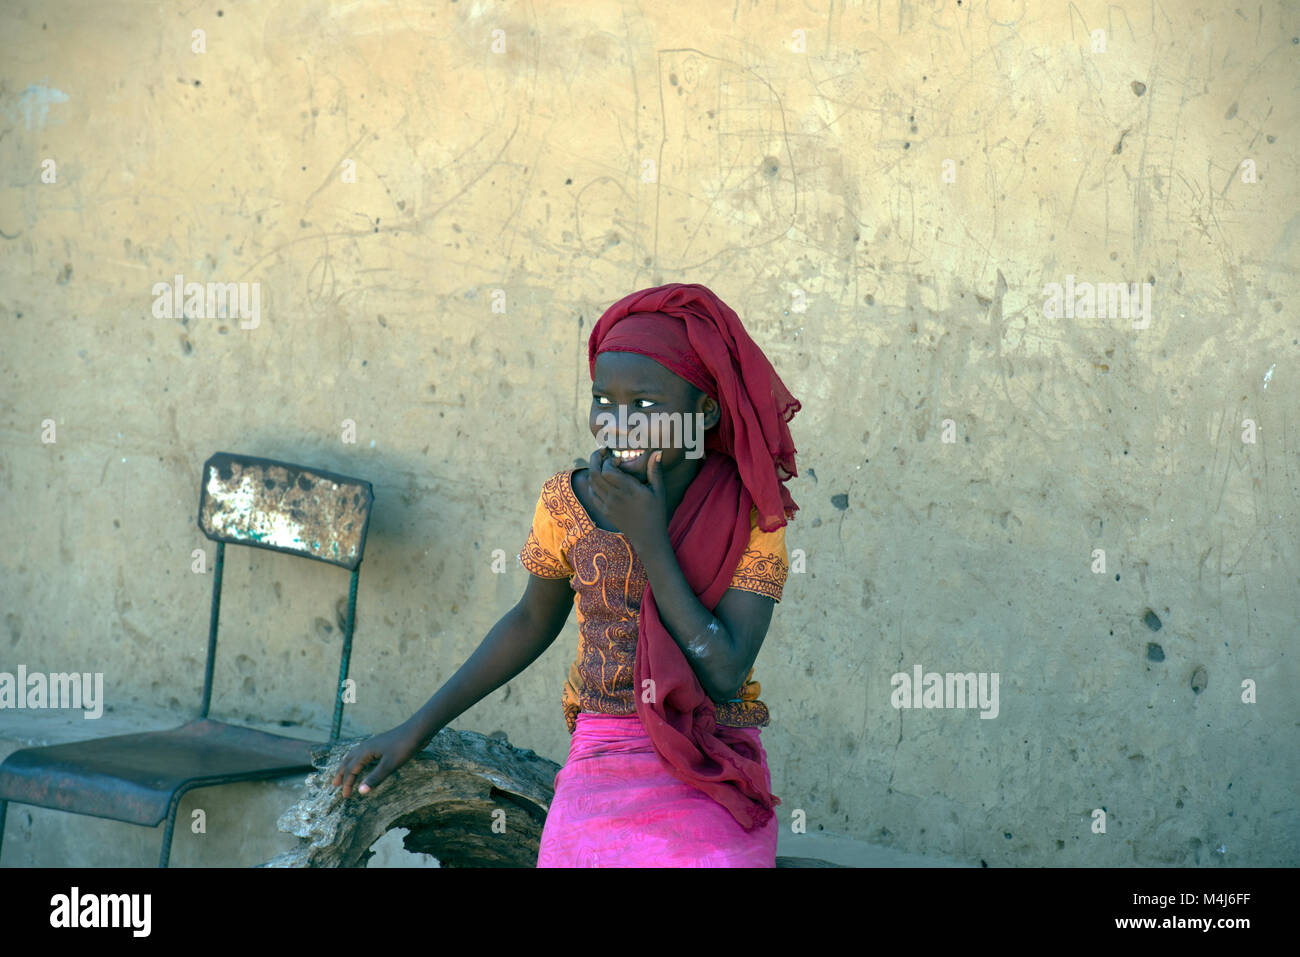 A young, smiling Mandinka girl in colourful clothing in her remote village in The Gambia, West Africa. - Stock Image